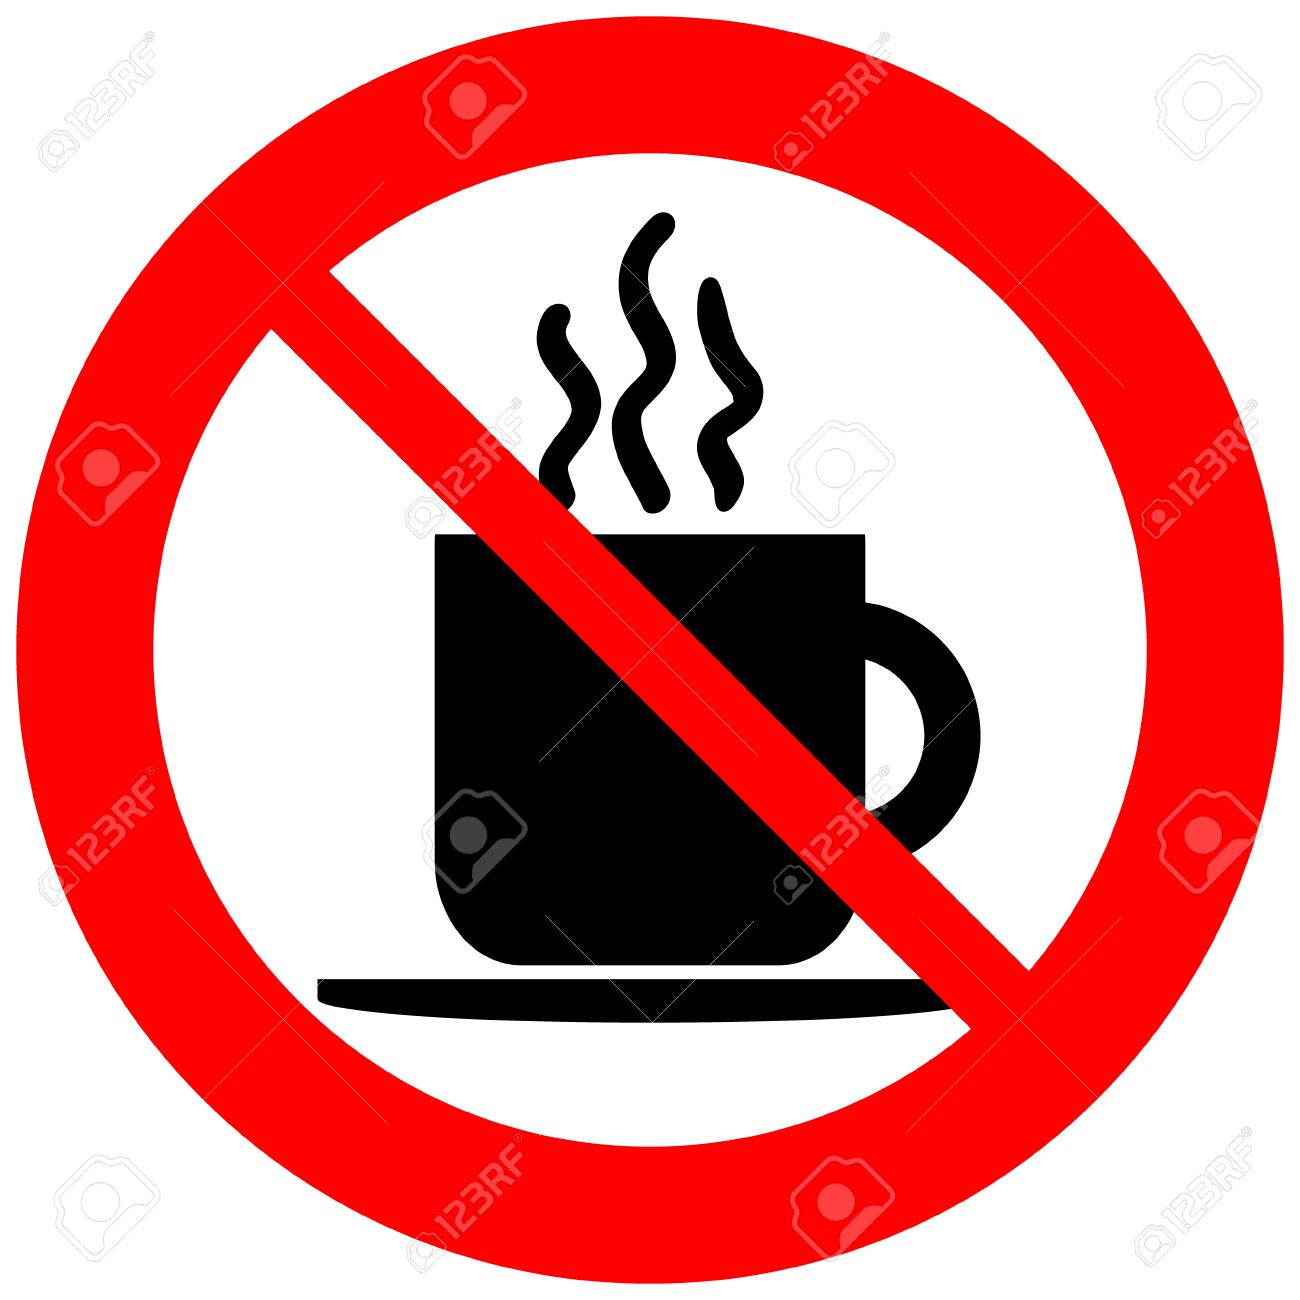 No coffee cup sign on white background..